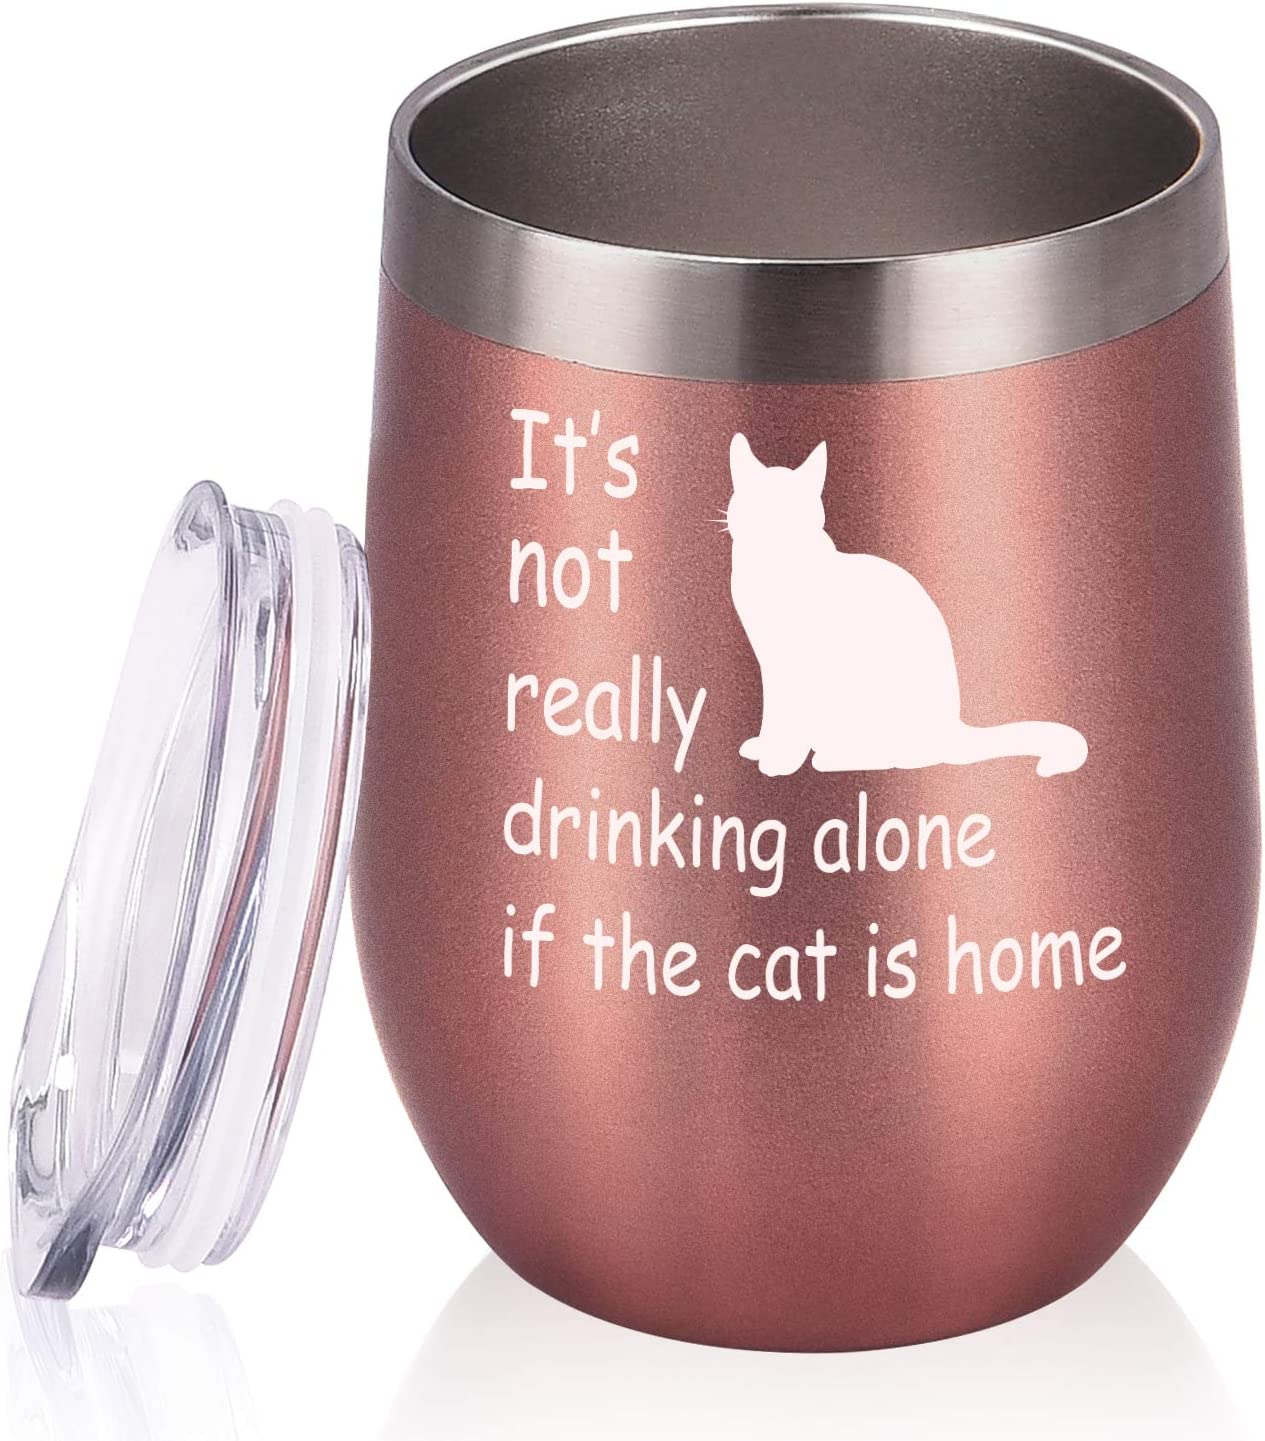 Cat Lover Gifts for Women, It's not Really Drinking Alone if the Cat is Home Wine Tumbler, Funny Birthday Gifts for Women Cat Mom Cat Lover Cat Lady